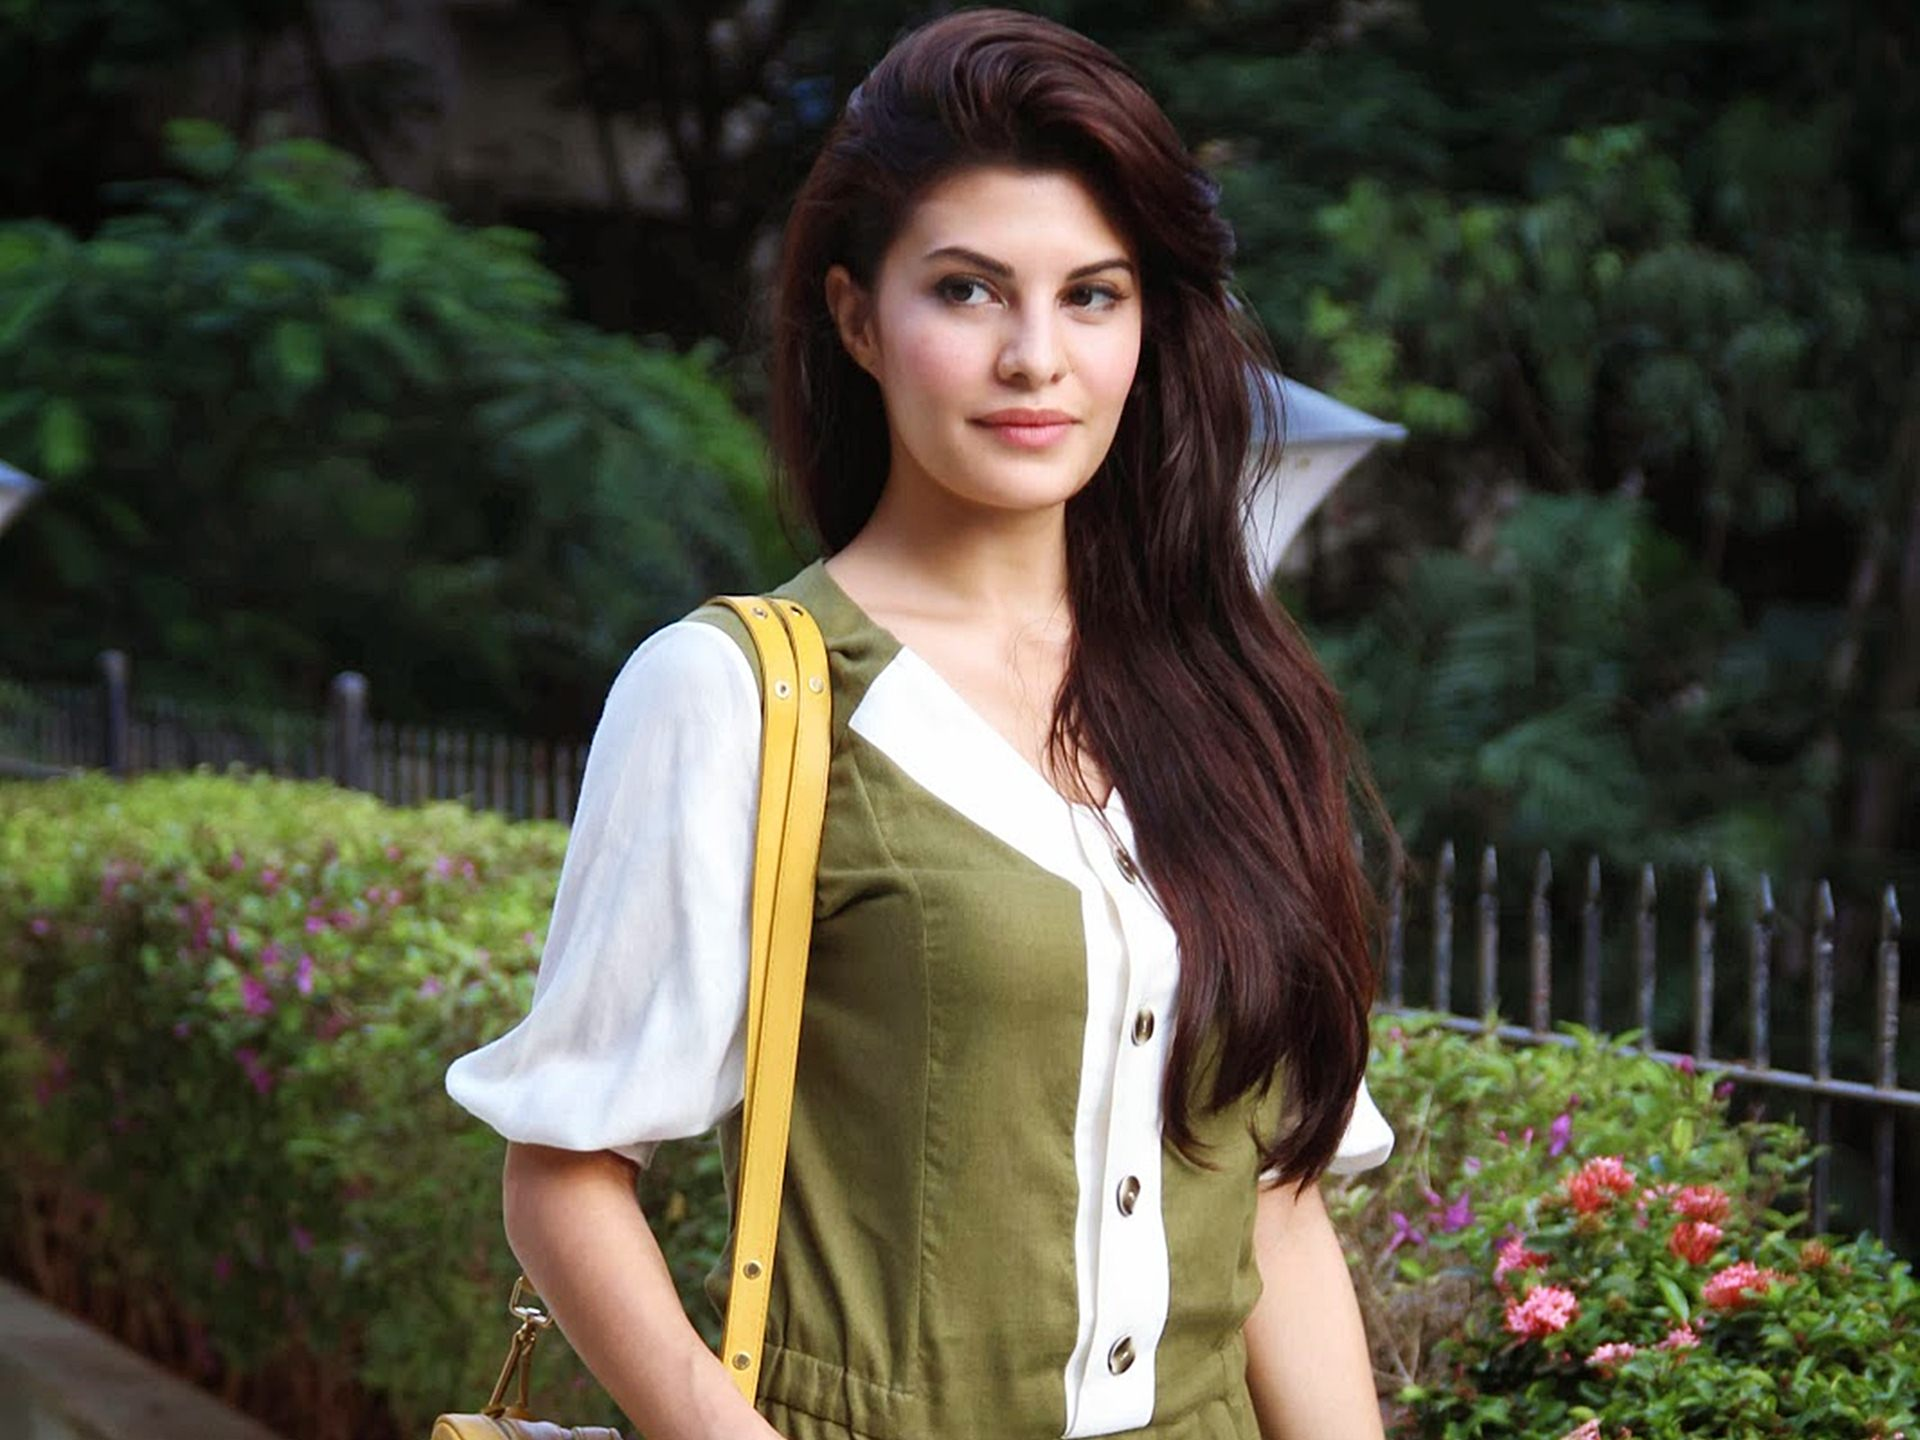 Jacqueline Fernandez HD Wallpapers - HD Wallpapers Backgrounds of Your ...